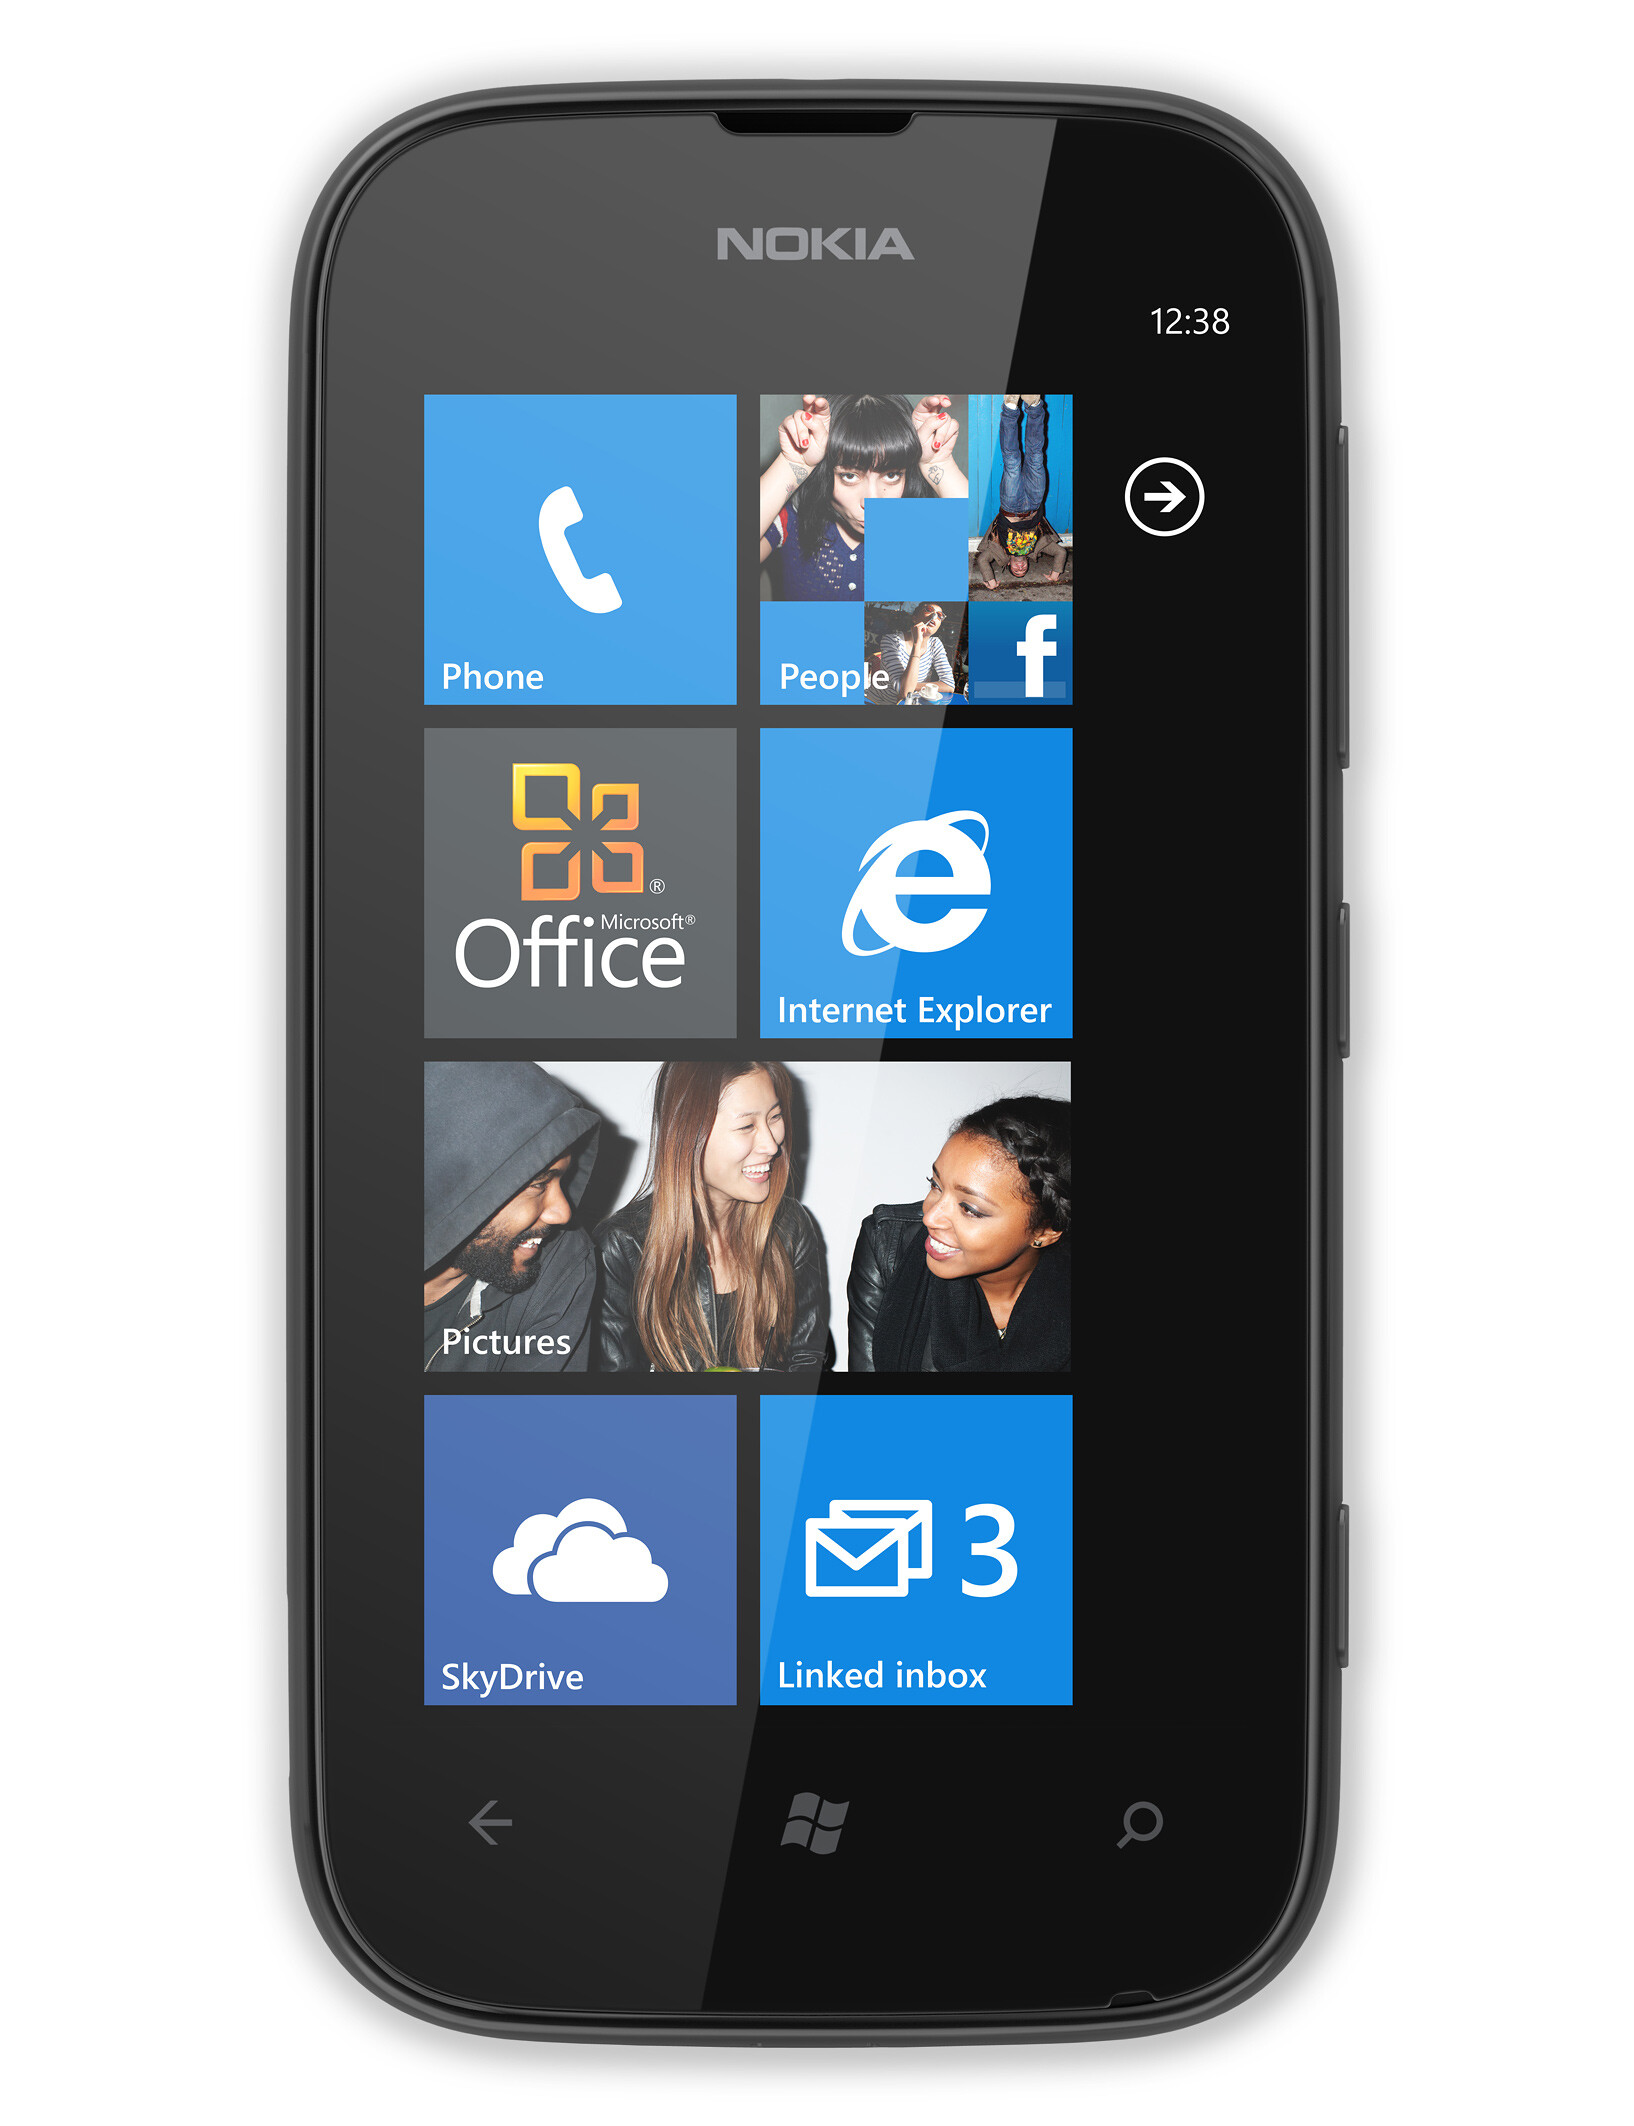 Nokia Lumia 510 Nokia Lumia 510 Review: Affordable Windows Phone 7.8